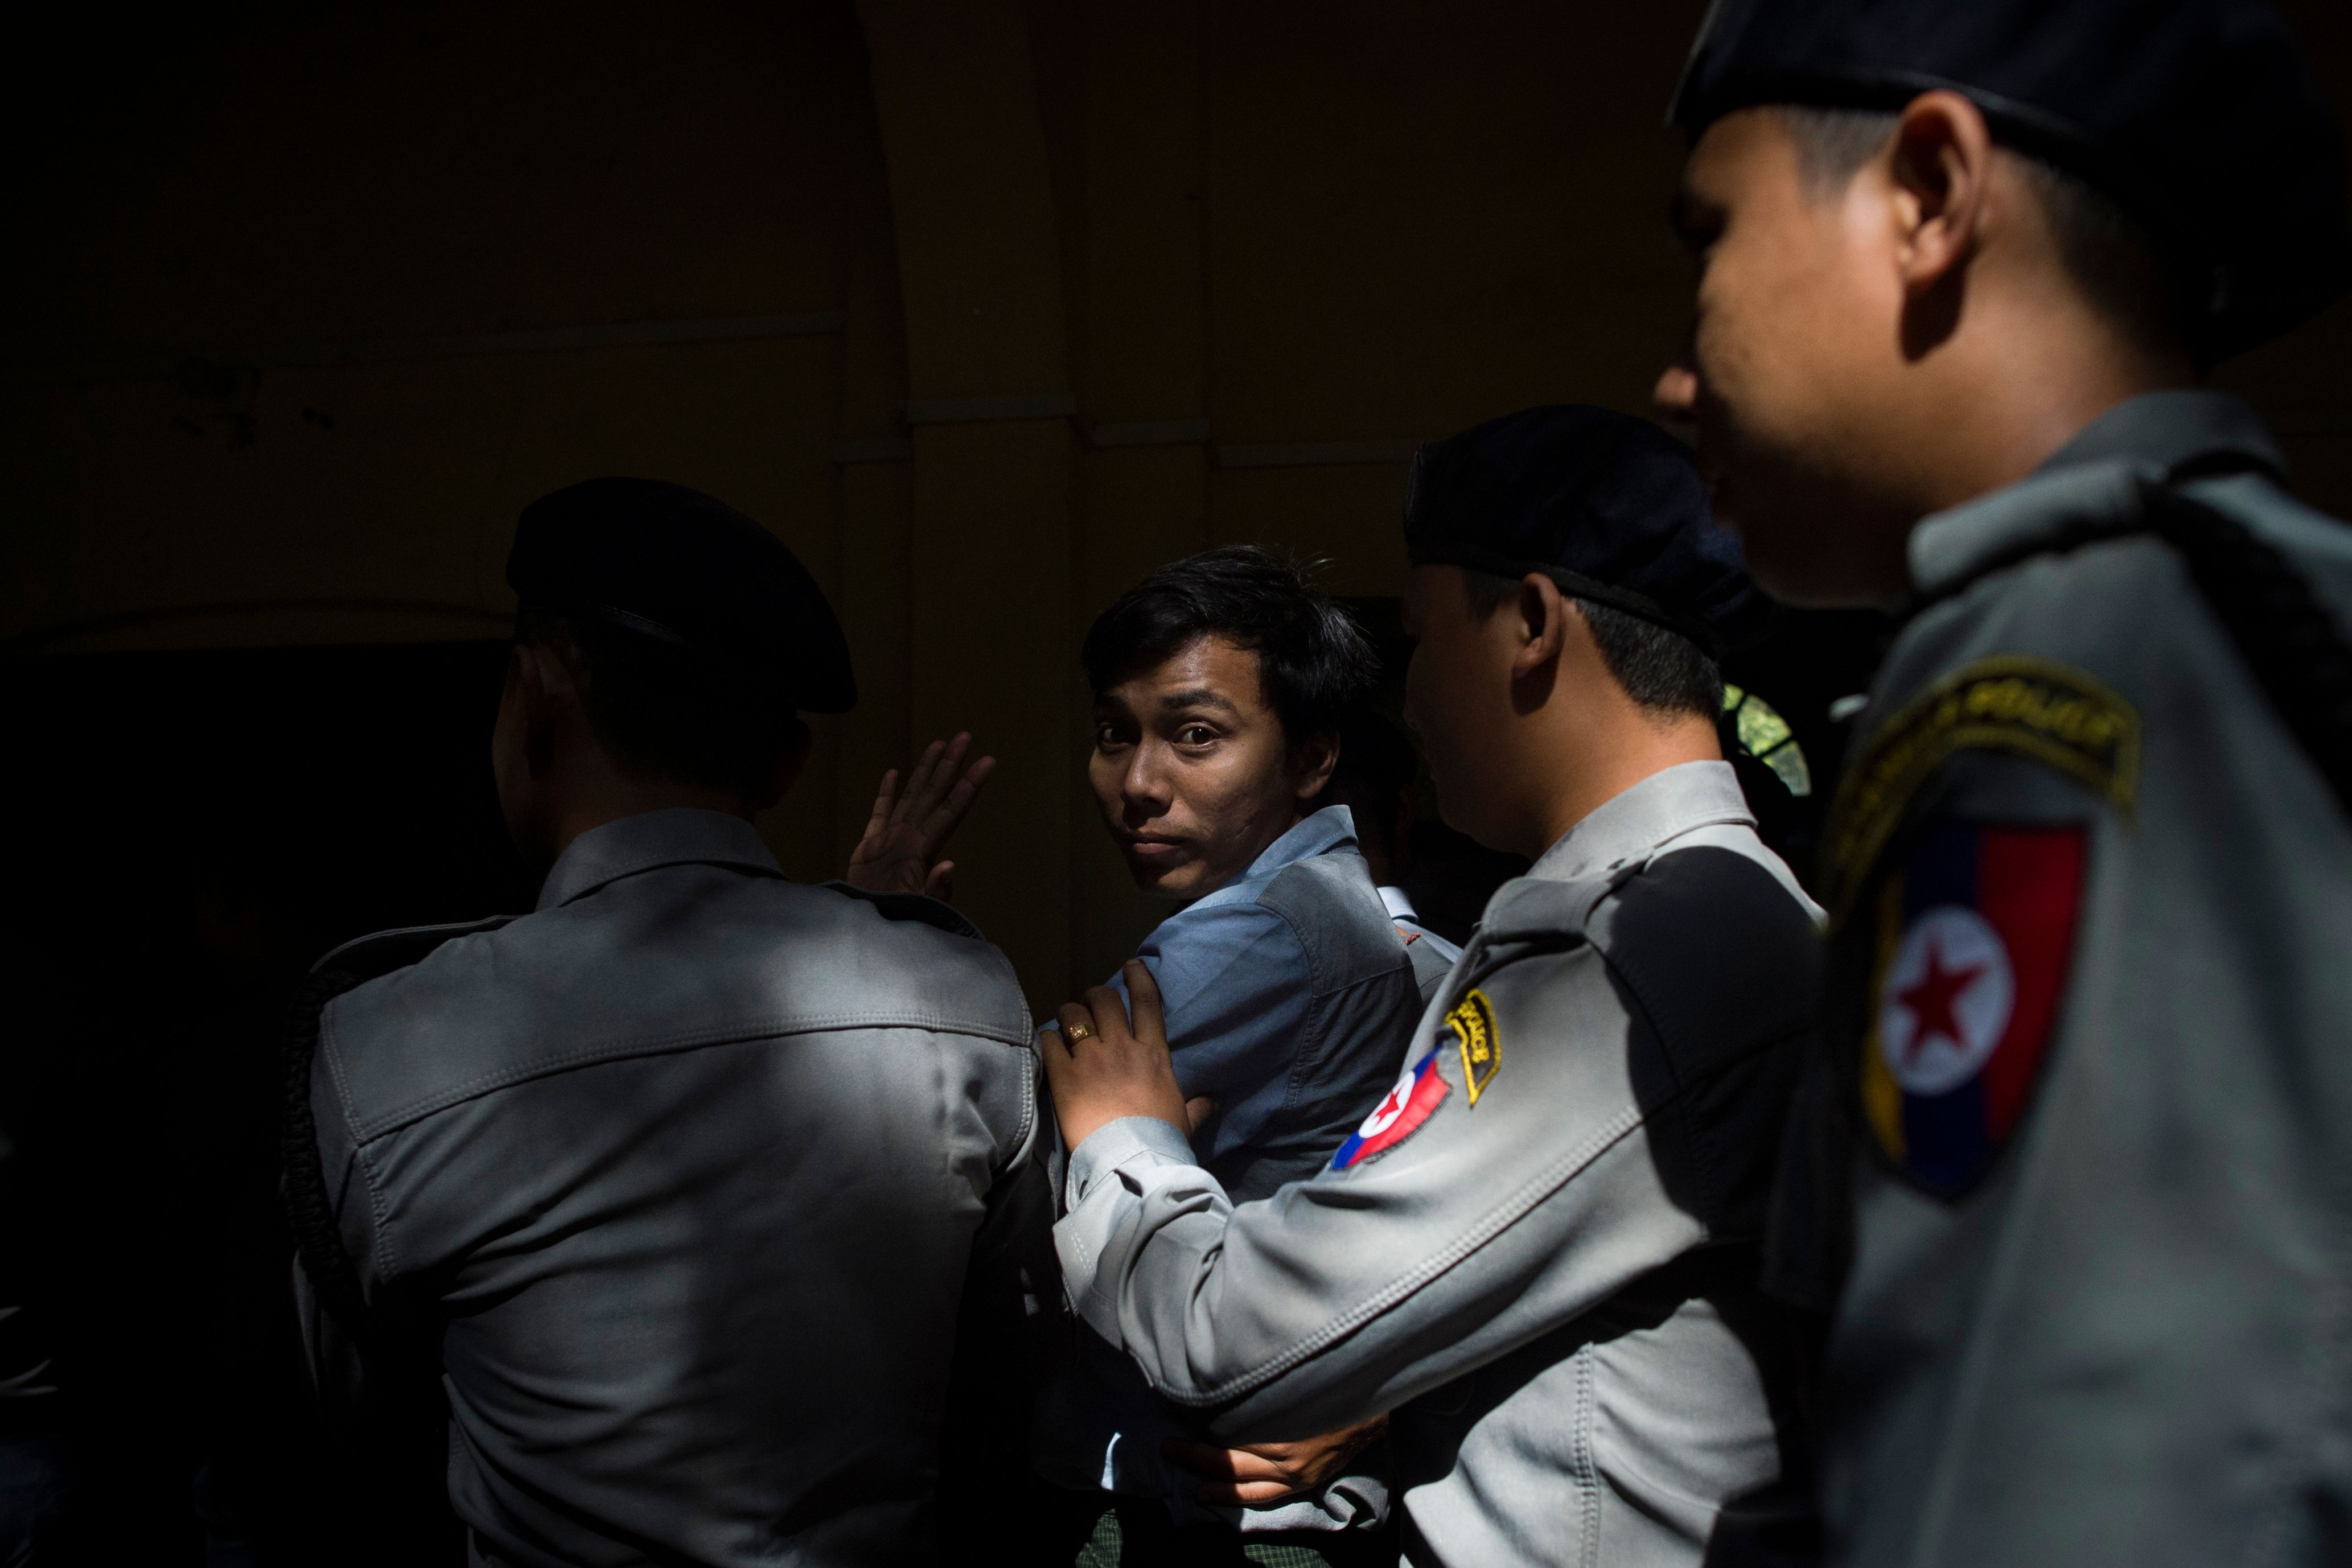 Reuters journalist Kyaw Soe Oo is escorted by police after a court appearance in Yangon, Myanmar on Jan. 10, 2018.